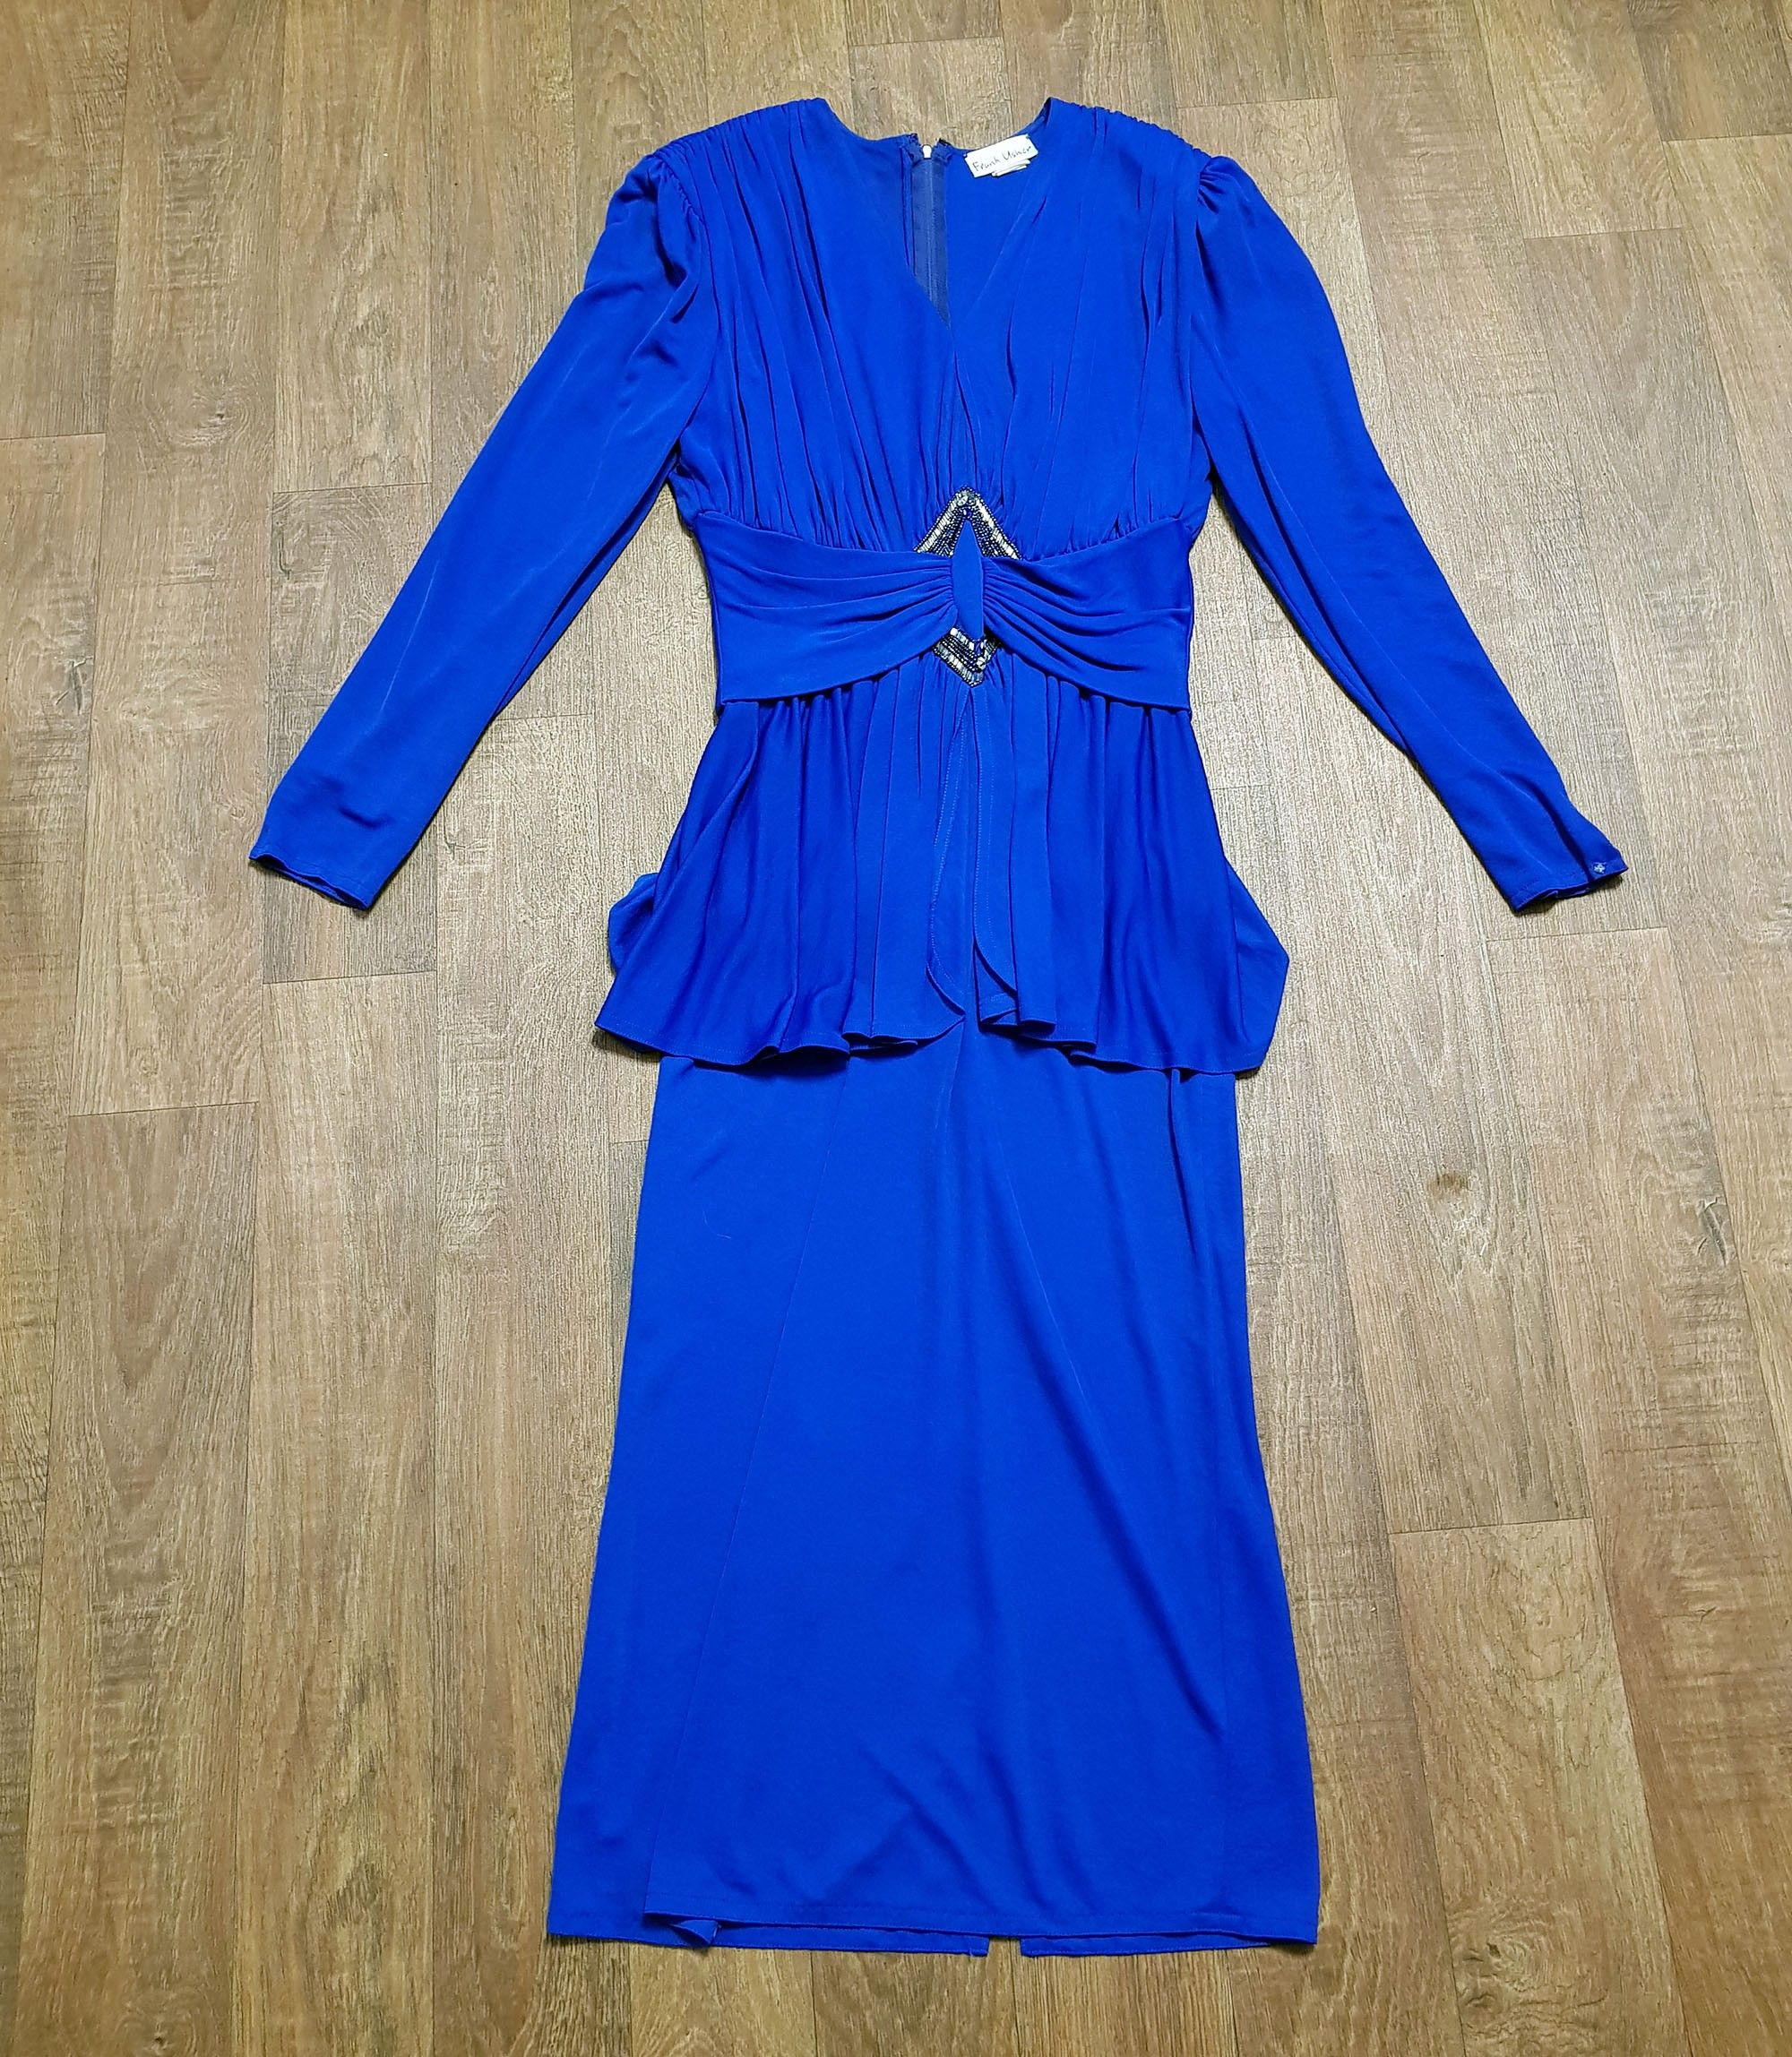 1980s Vintage Frank Usher Blue Cocktail Dress UK Size 12